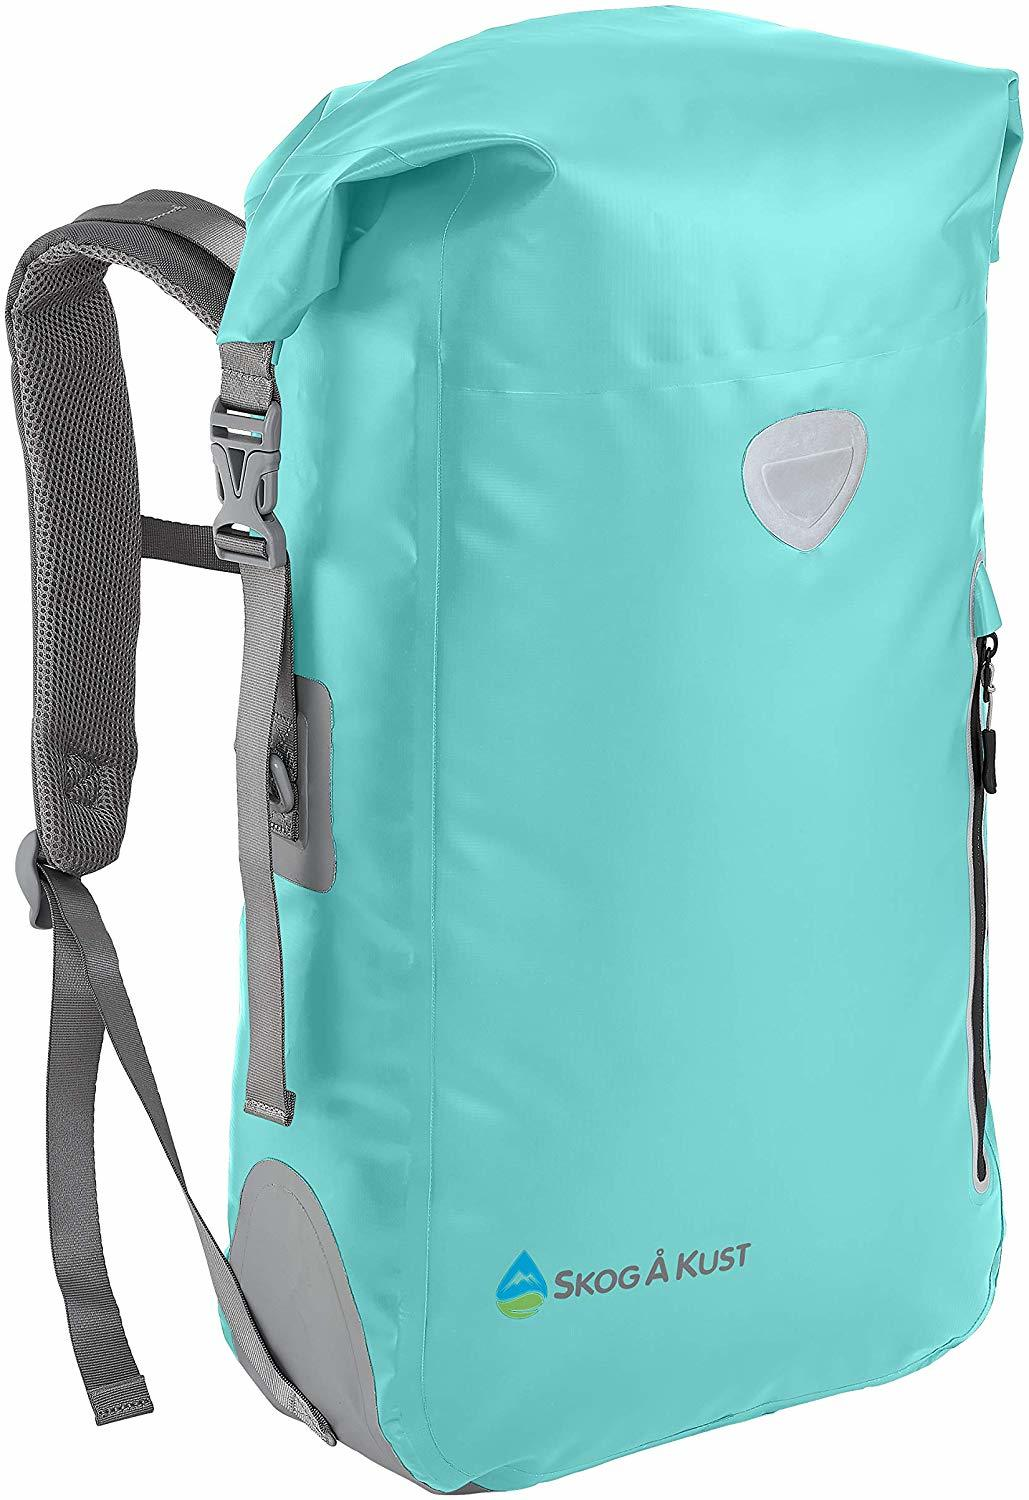 The Top 10 Dry Bag to Use to Keep Your Wet Clothes while Traveling 7